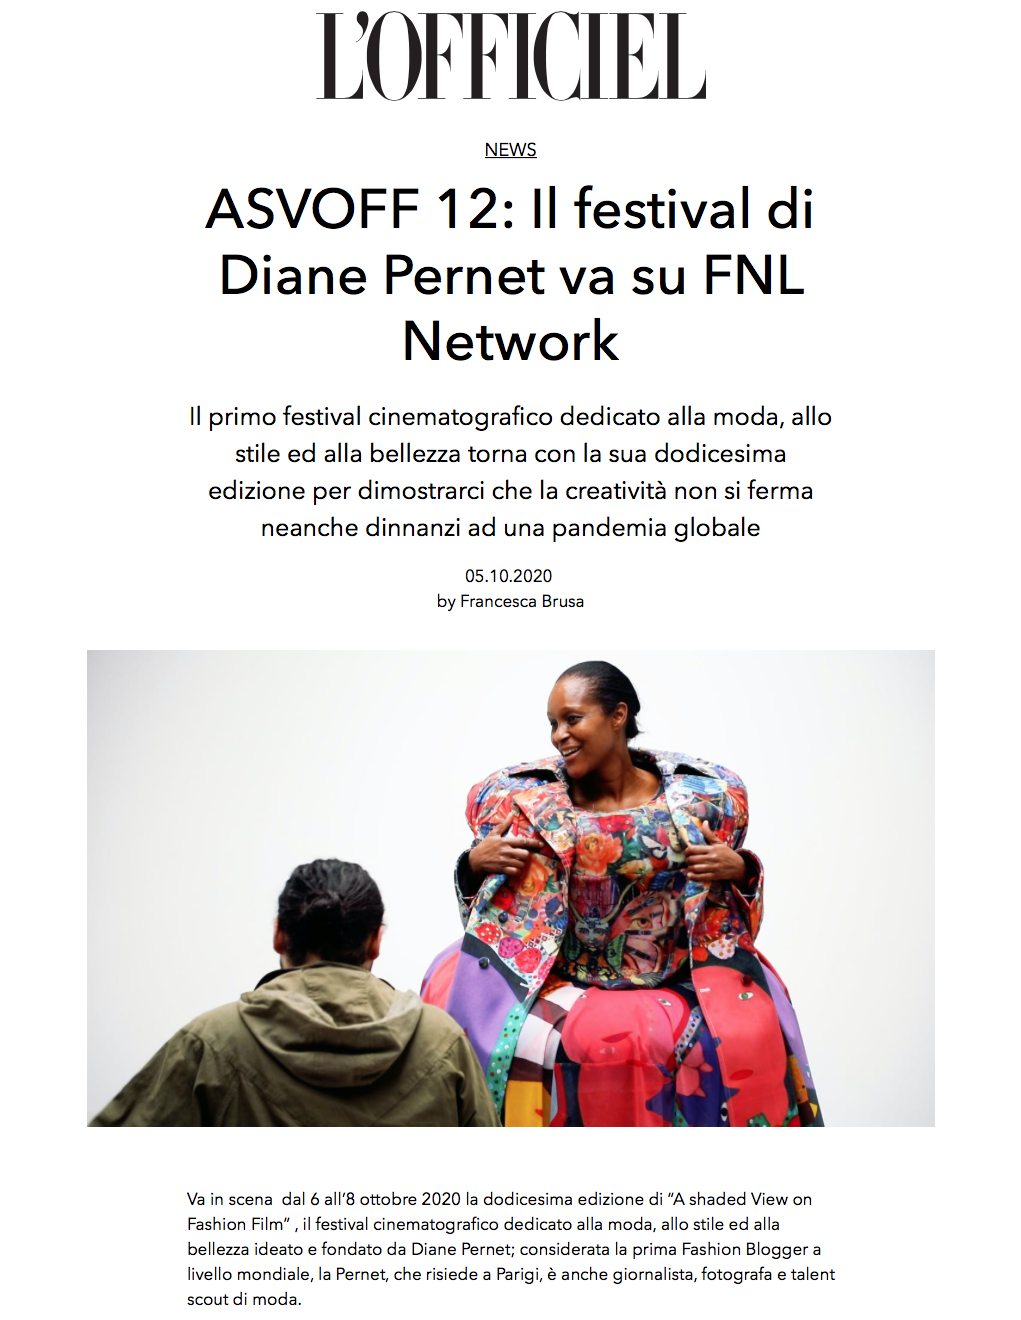 ASVOFF 12 - l'Officiel (Italy)